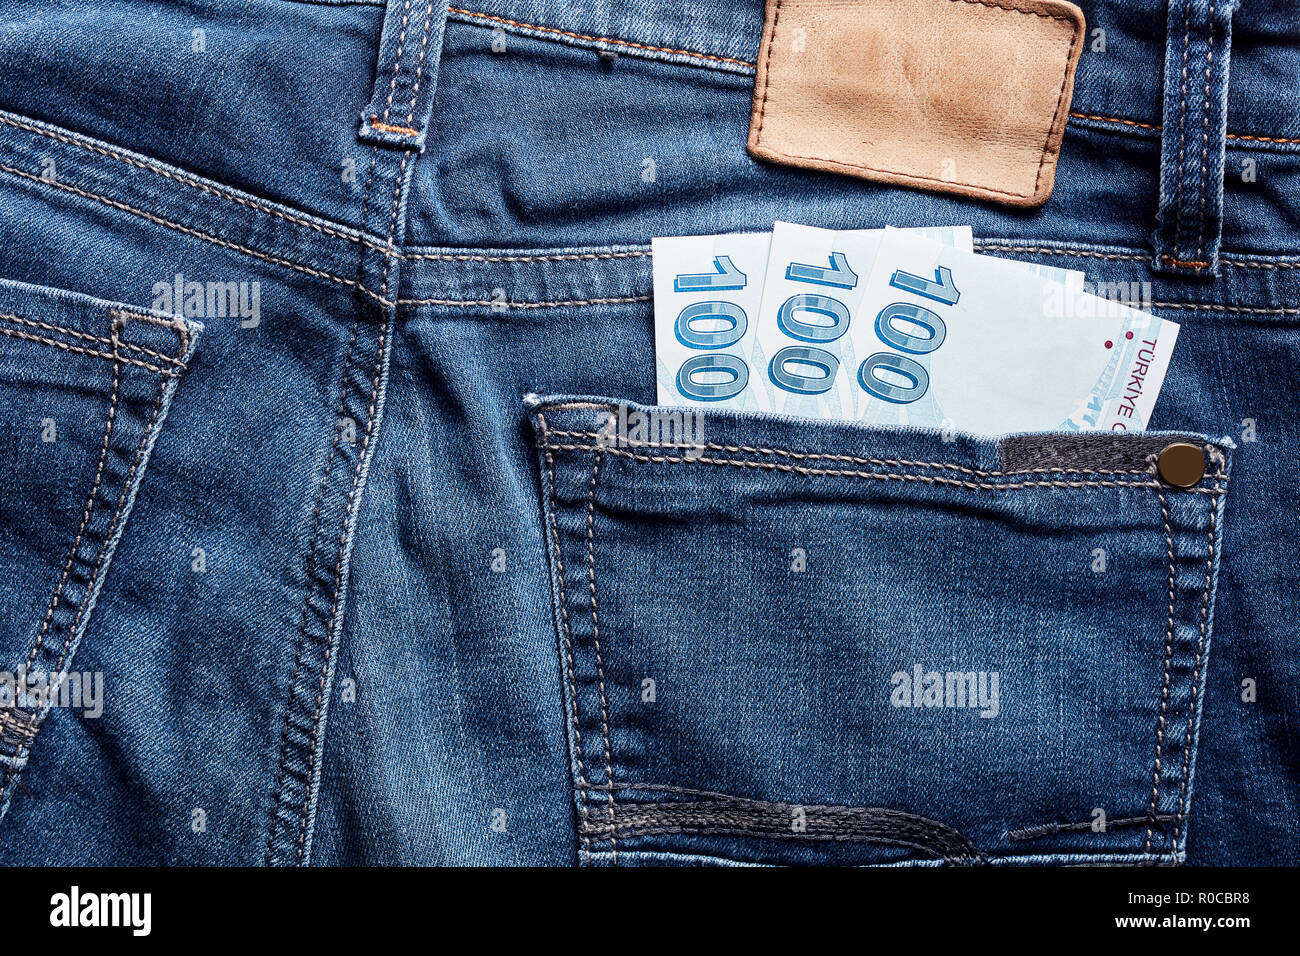 One hundred Turkish Lira bills in the back pocket of a blue jean. Stock Photo